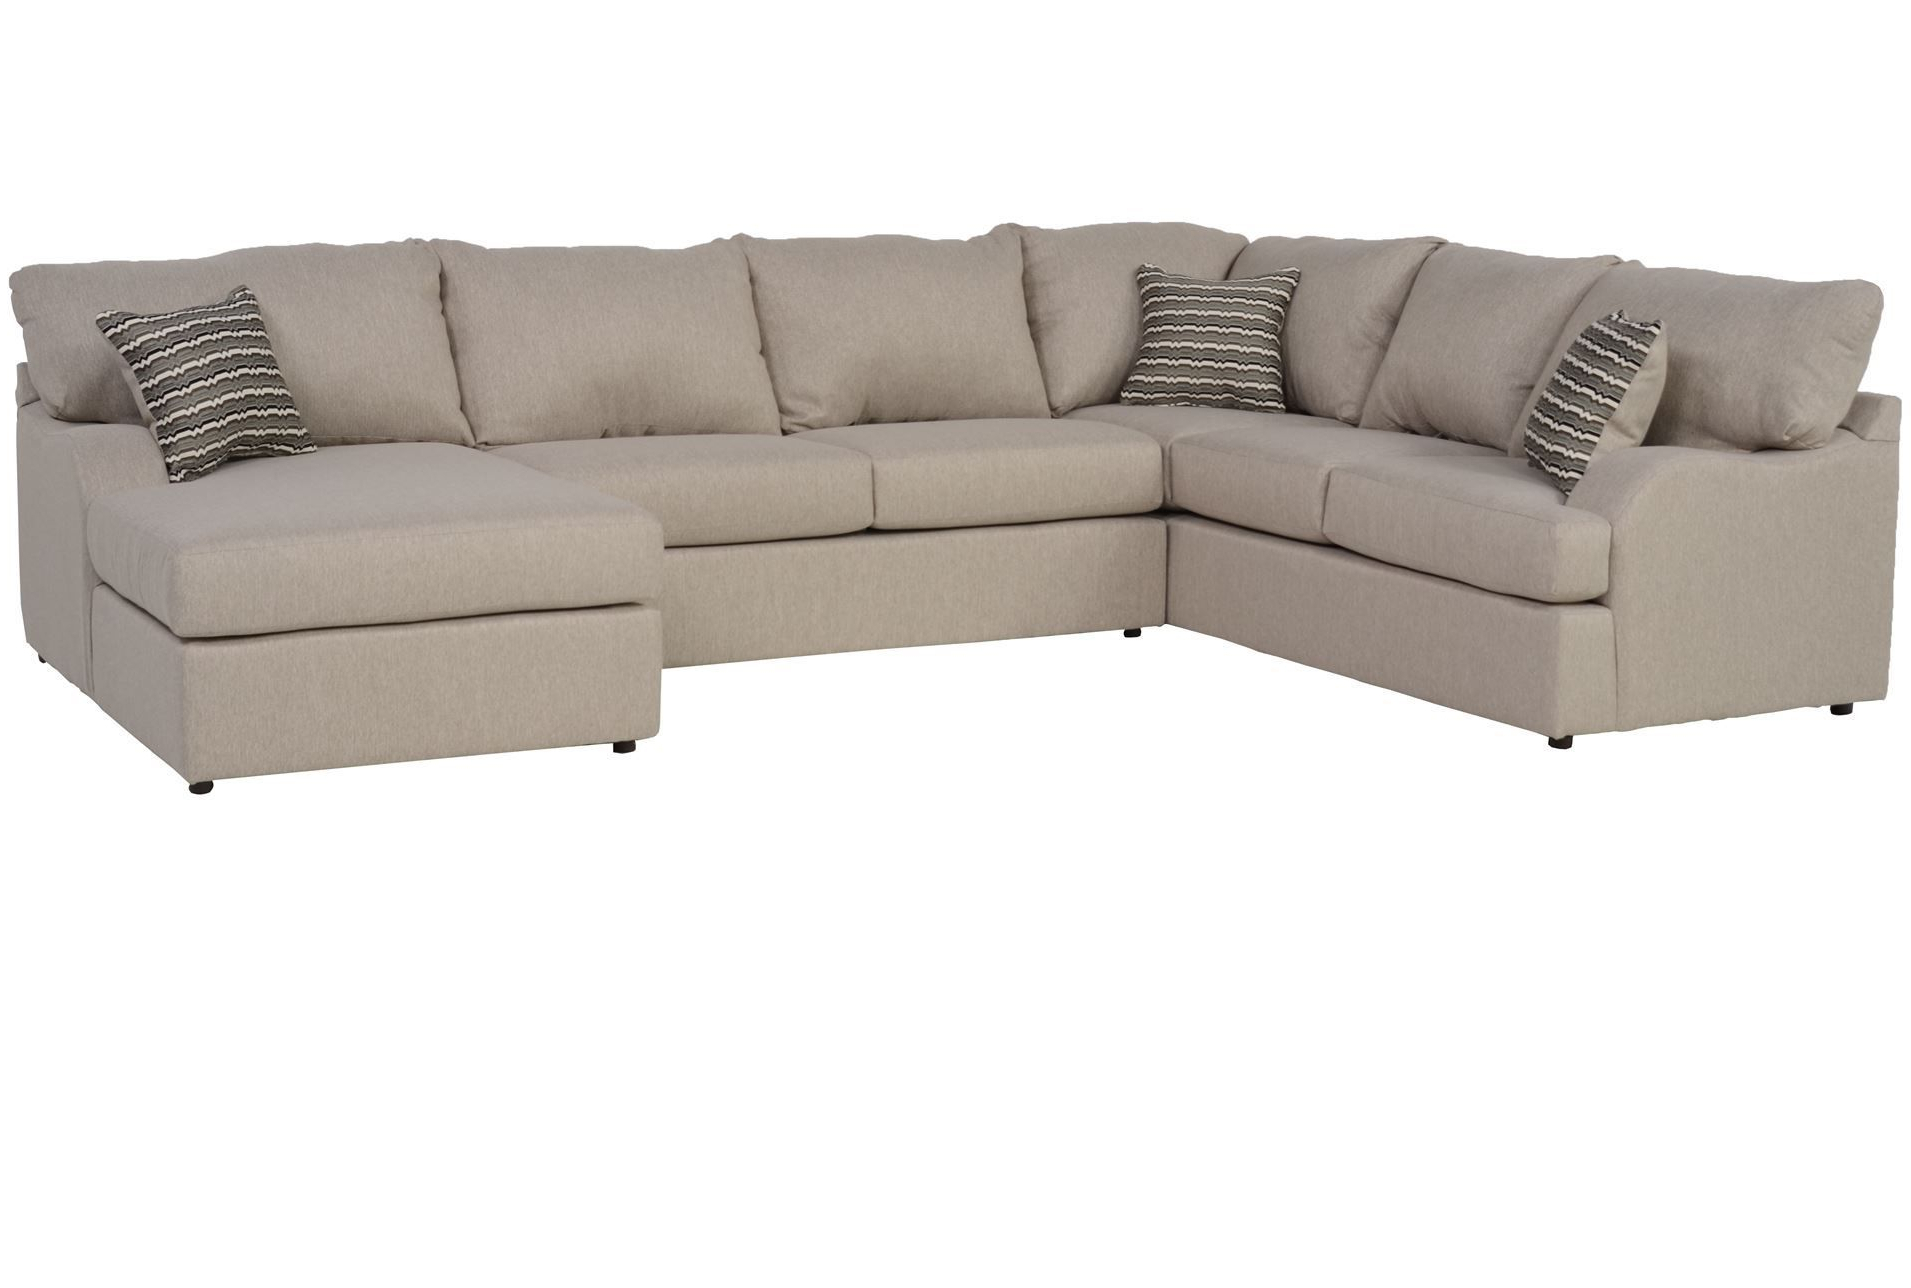 Meyer 3 Piece Sectional W/raf Chaise (View 4 of 20)